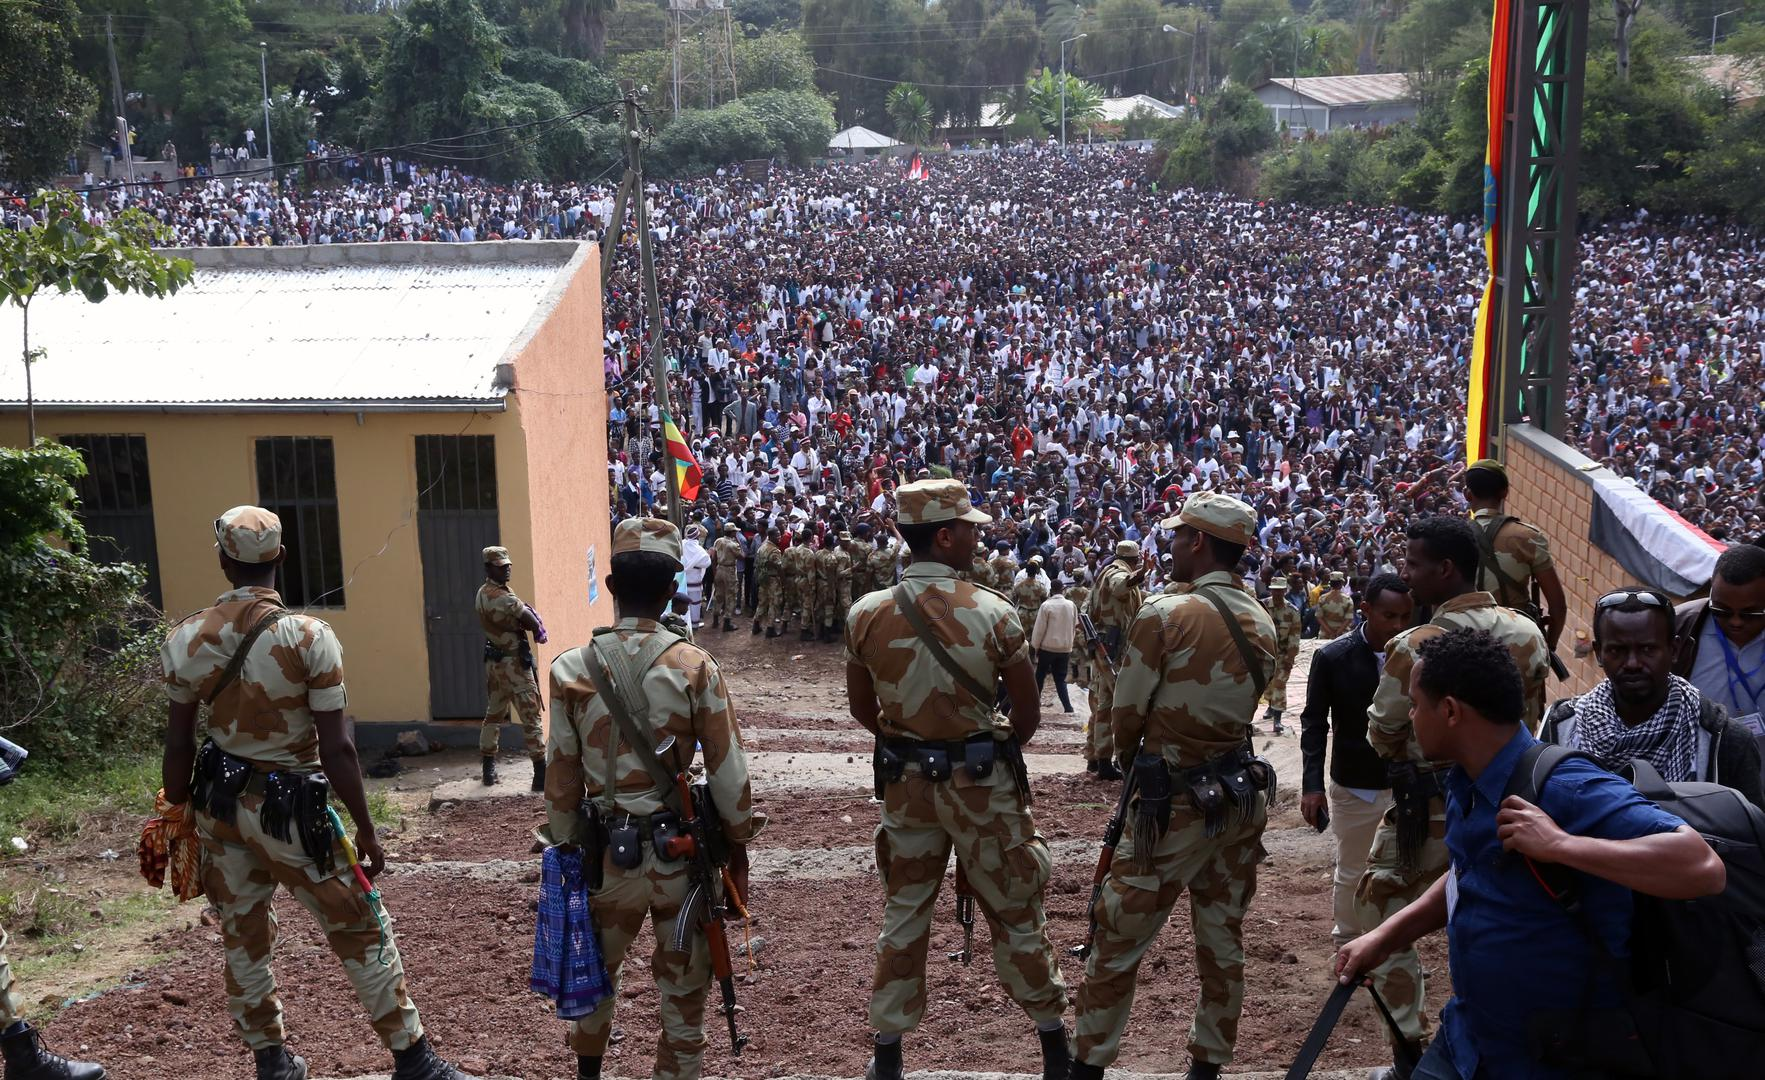 Armed security officials watch as protesters stage a protest against government during the Irreechaa cultural festival in Bishoftu, Ethiopia on October 02, 2016.